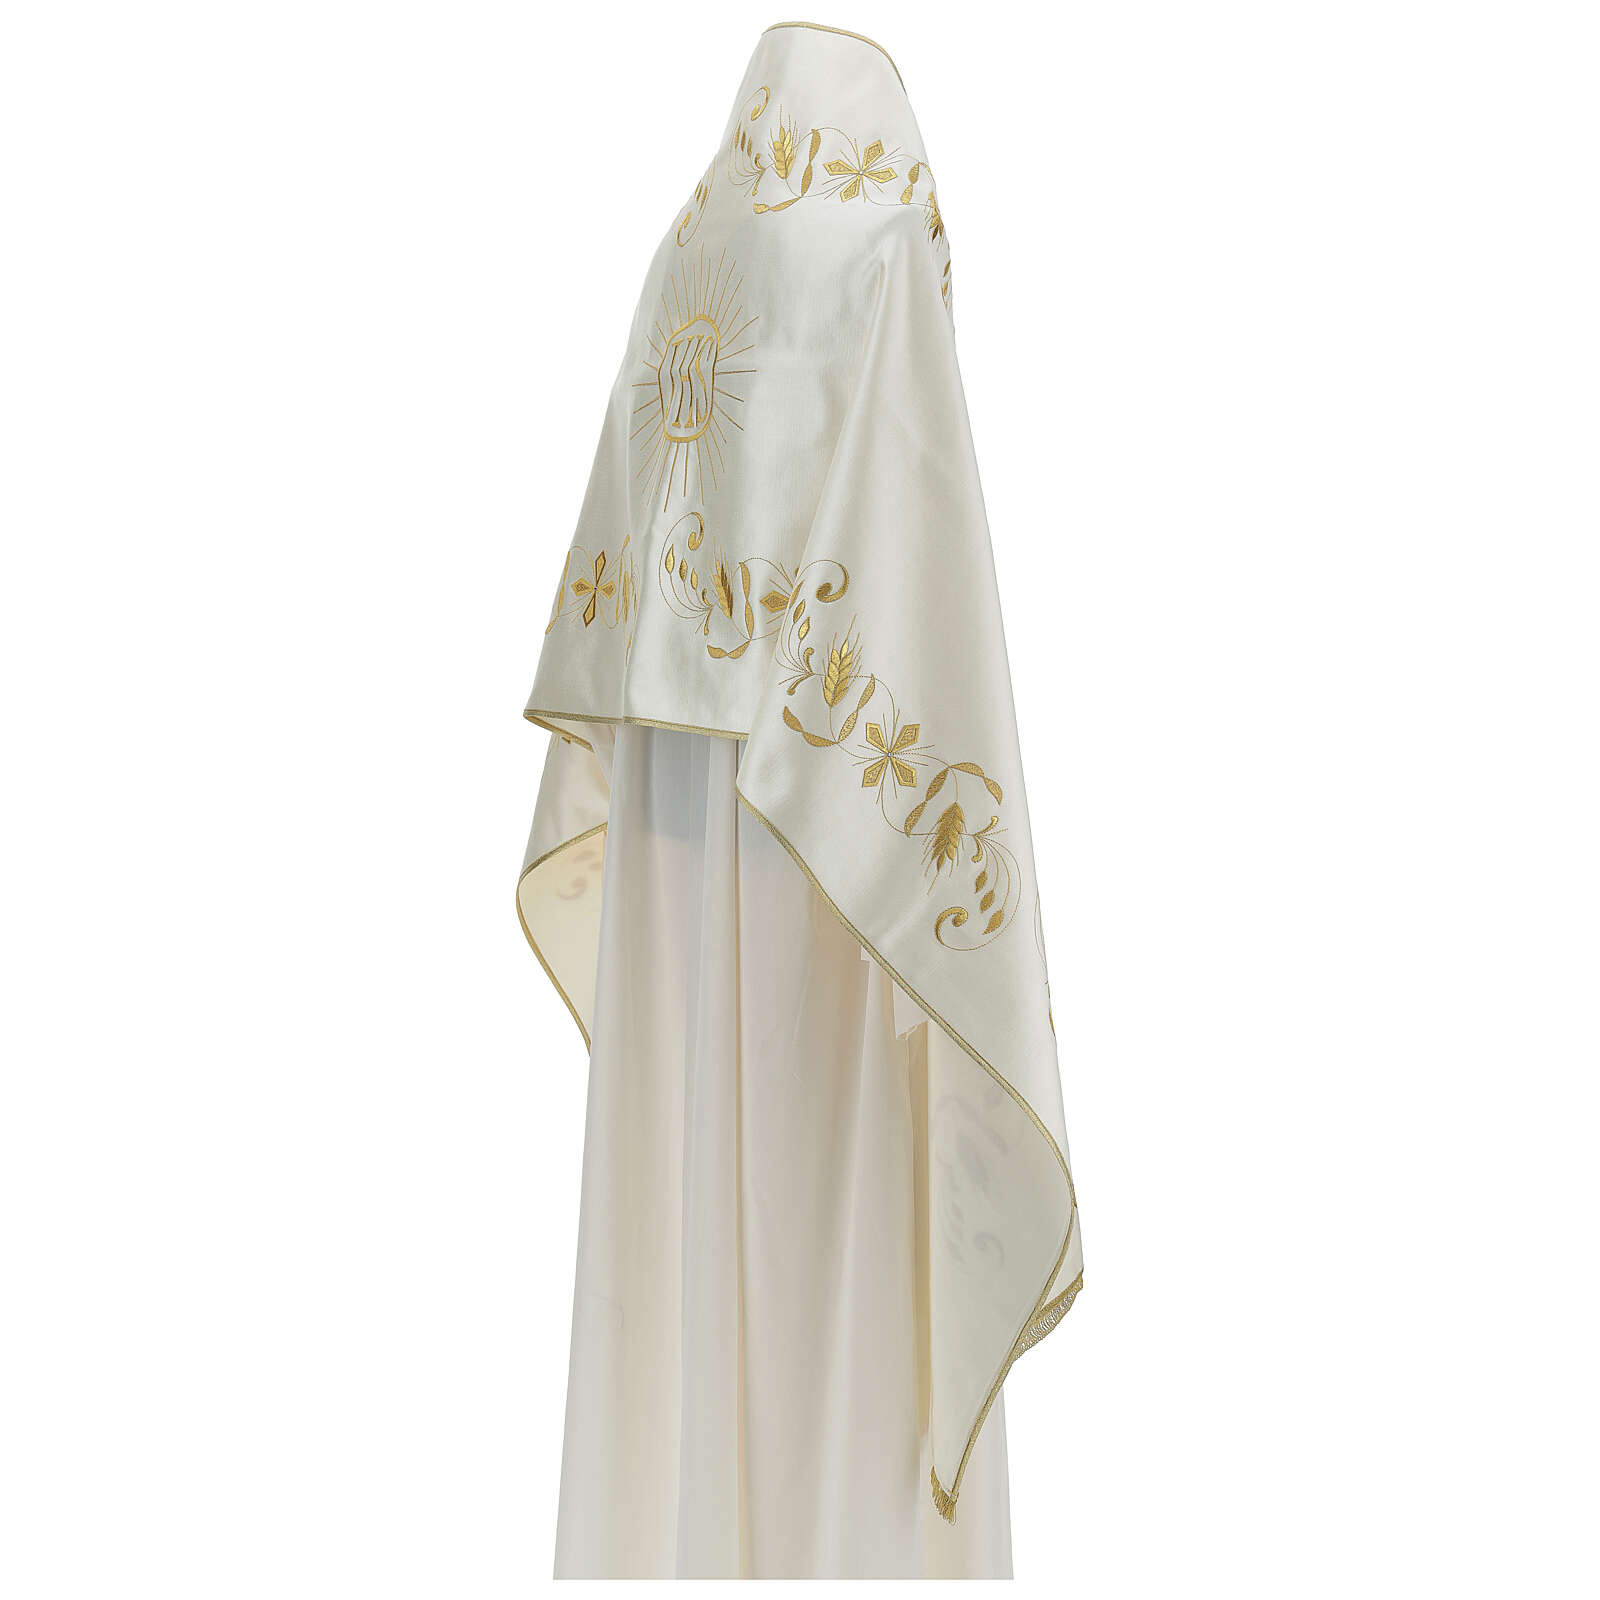 Ivory humeral veil with Swarovski in mix cotton 4